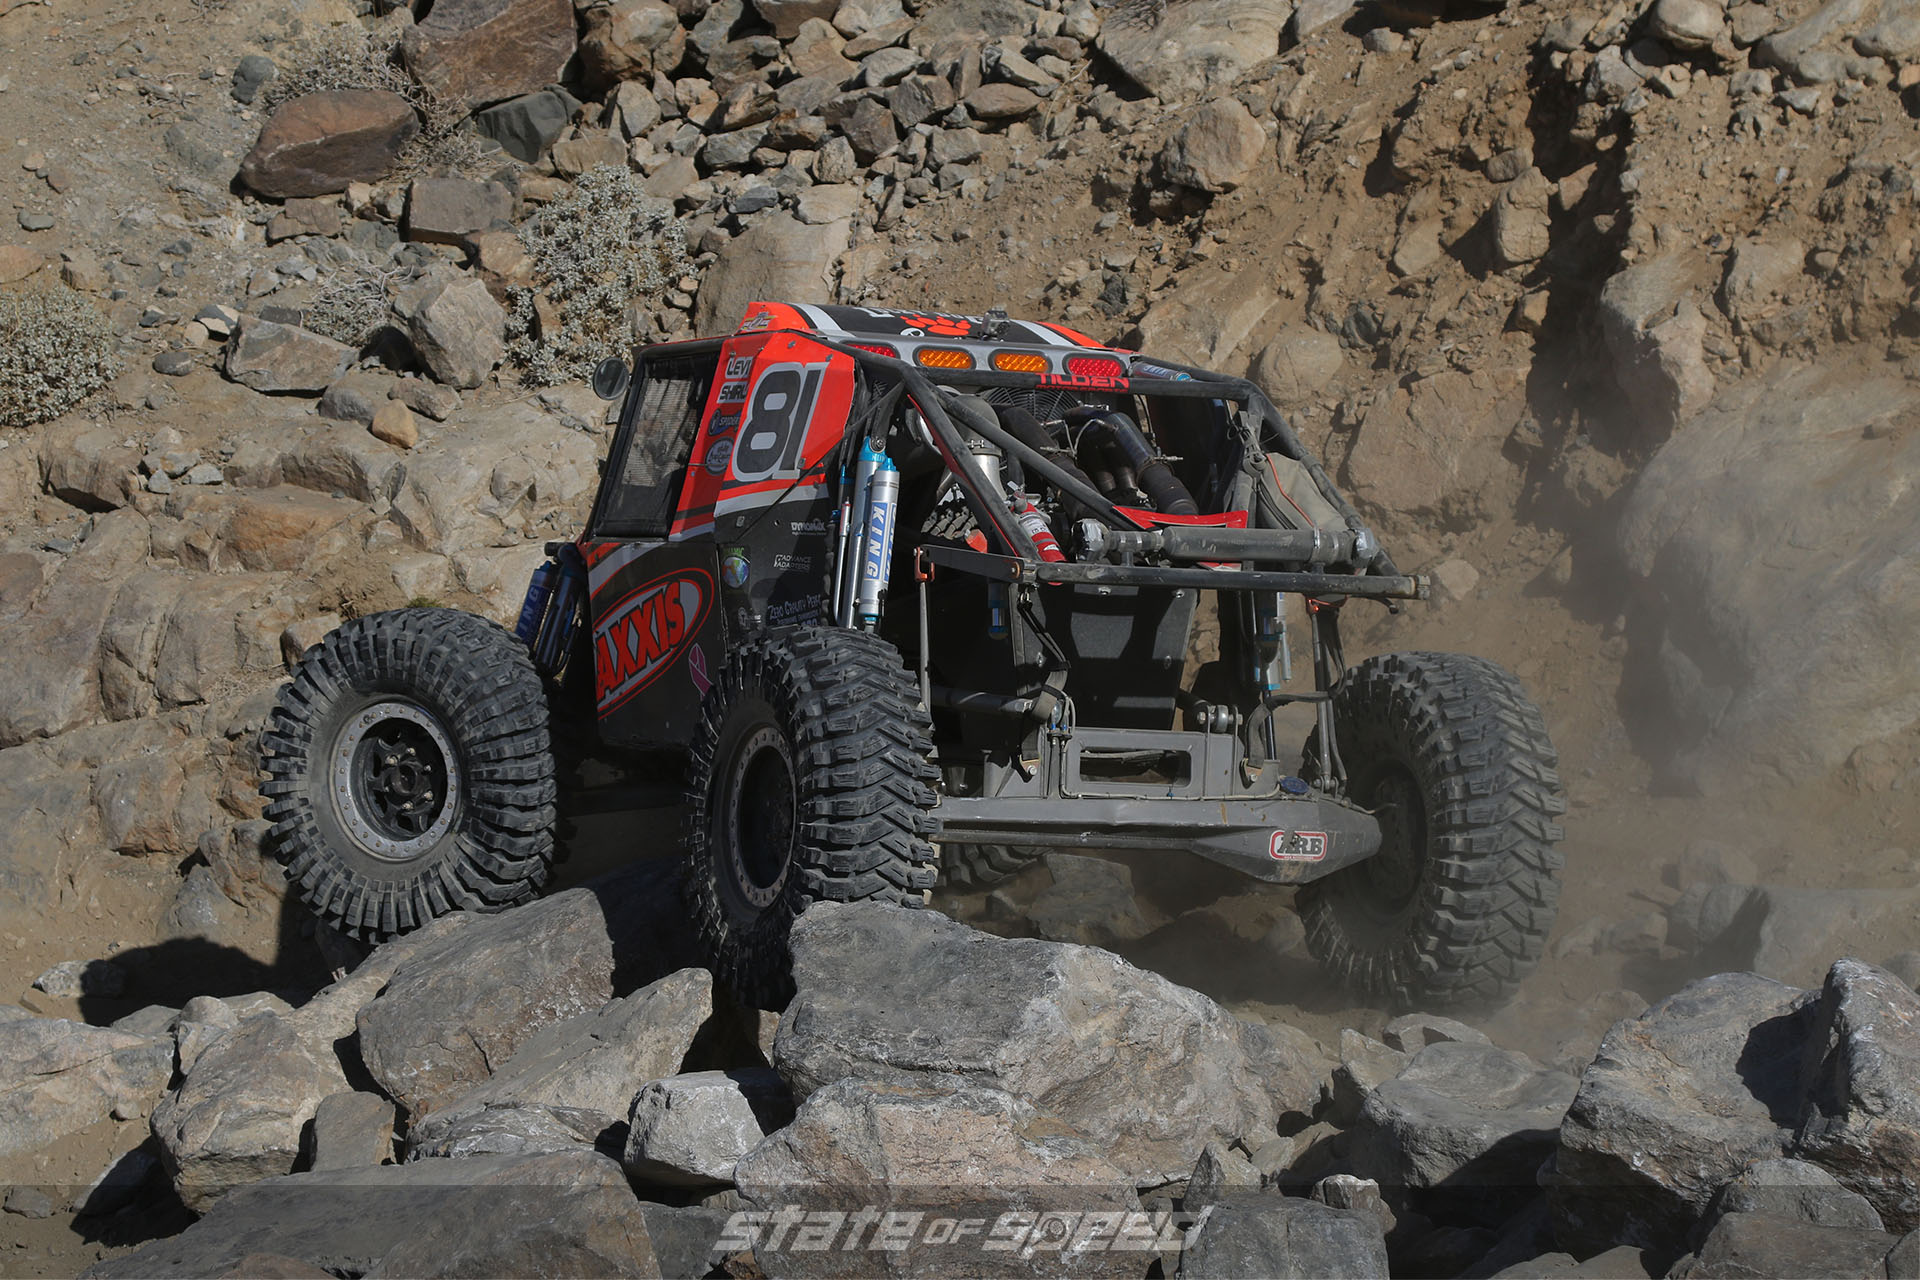 Rock crawling competition vehicle